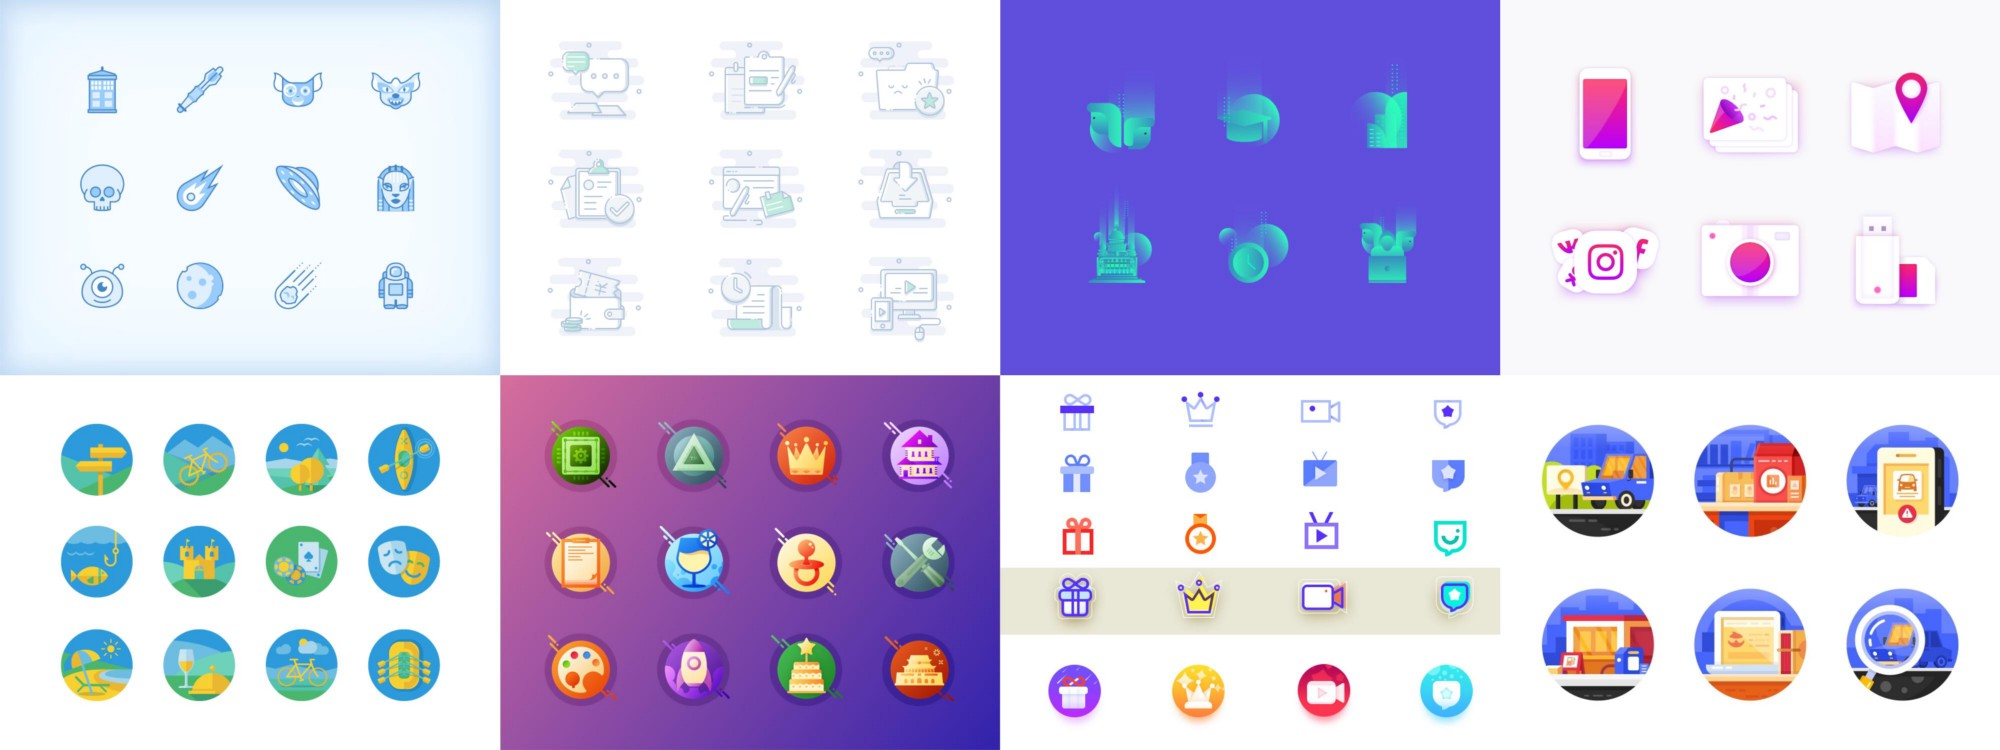 Heres Our Third Article On Blog Series Icon Design Inspiration We Must Say It Was One Of The Toughest Time When Designers Were Confuse About